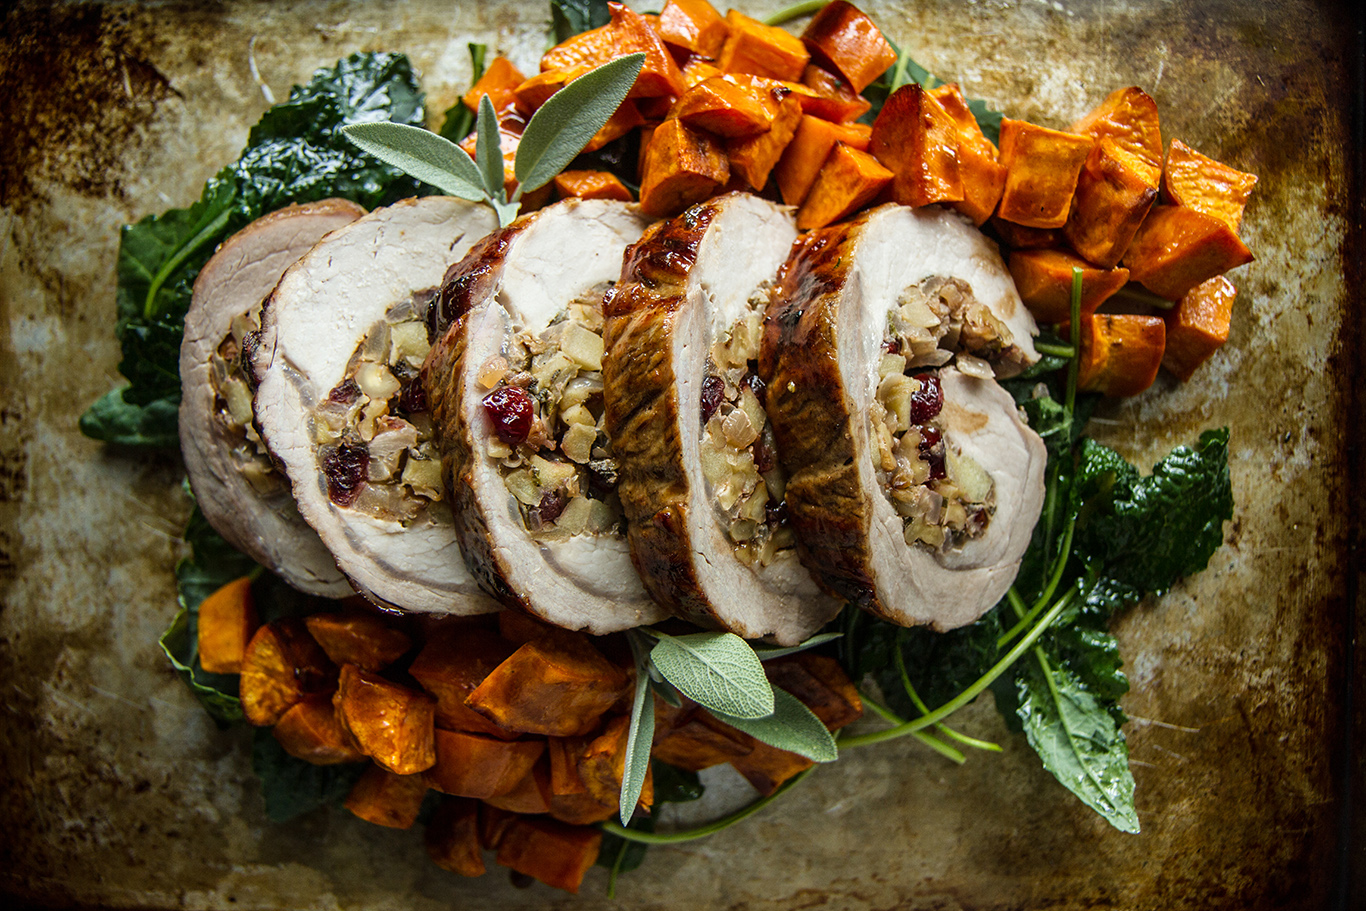 Cider-Glazed Pork Loin with Apple-Walnut stuffing and Roasted Sweet Potatoes